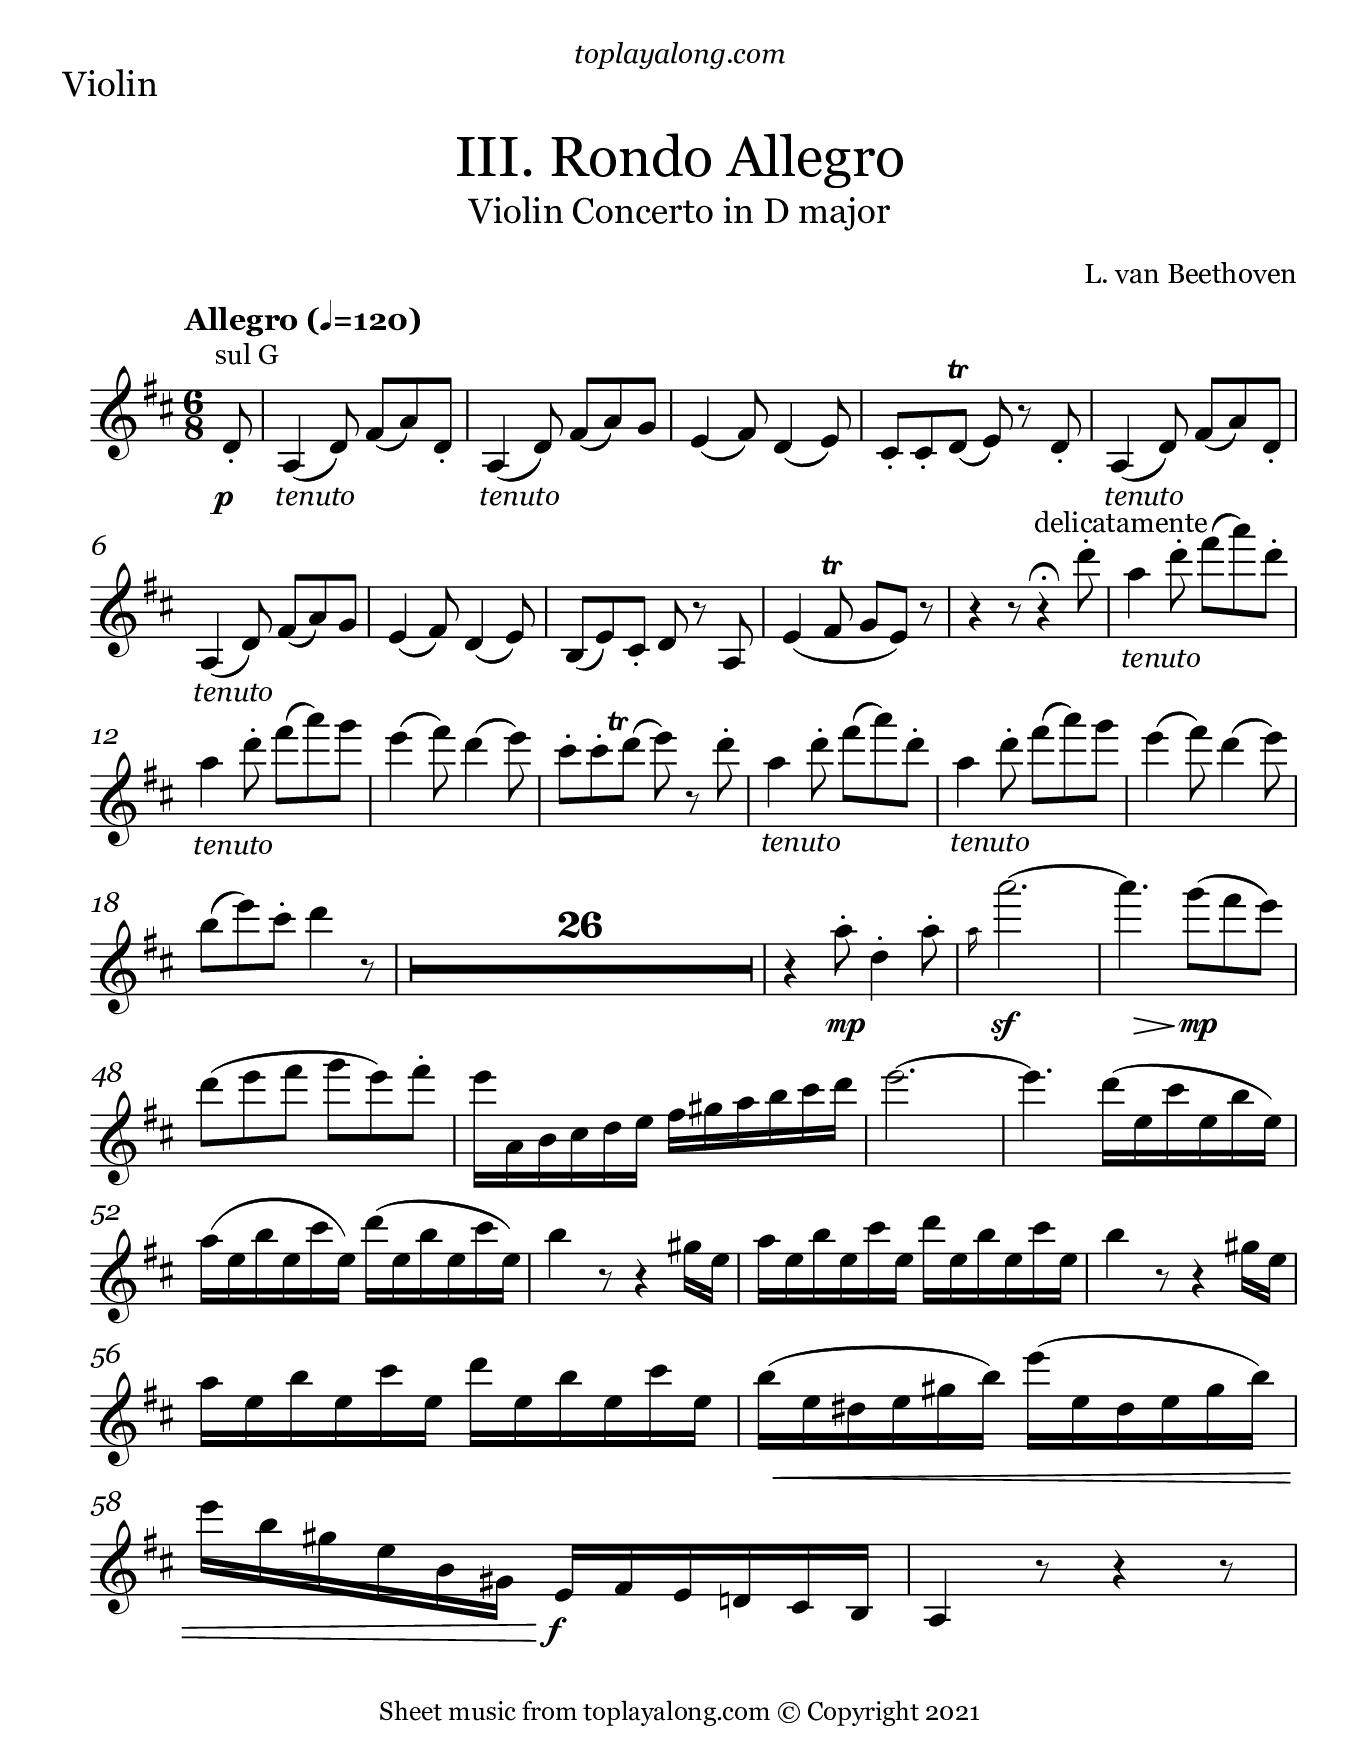 Violin Concerto in D Major (III. Allegro Rondo) by Beethoven. Sheet music for Violin, page 1.